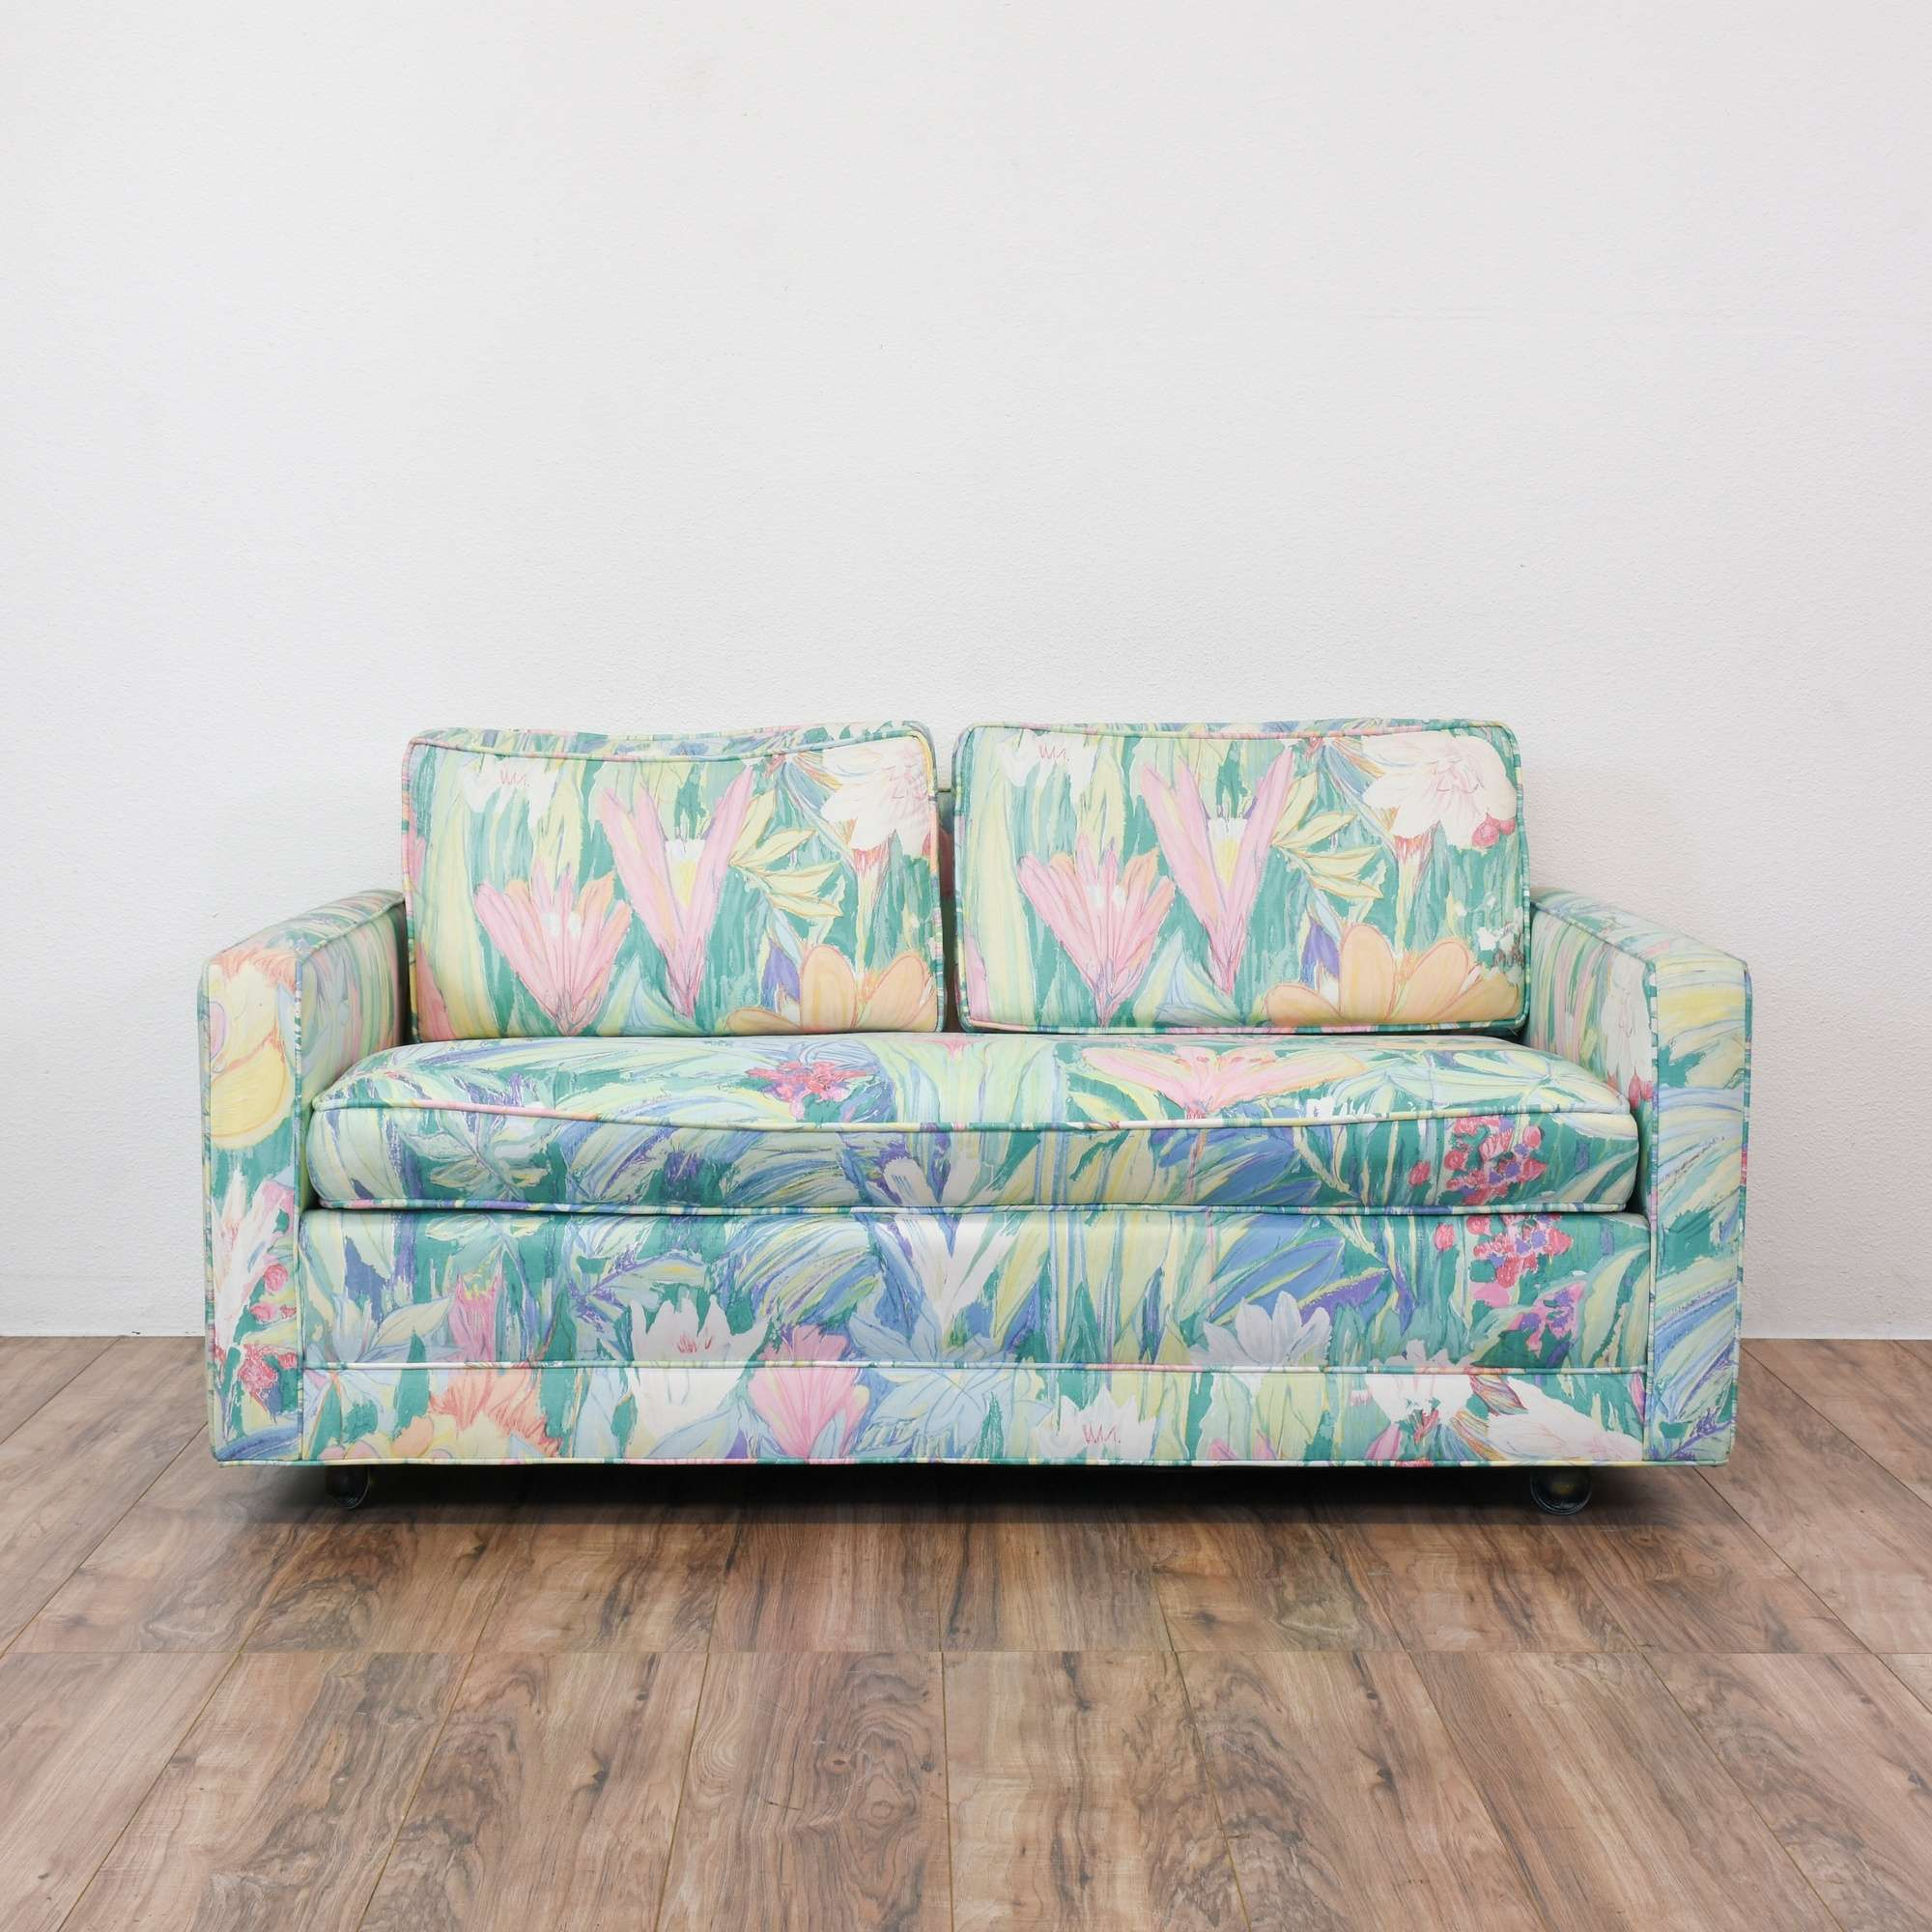 ergonomic quilted new sofa covers furniture loveseat of loveseats elegant chairs and floral hi sofas meadow